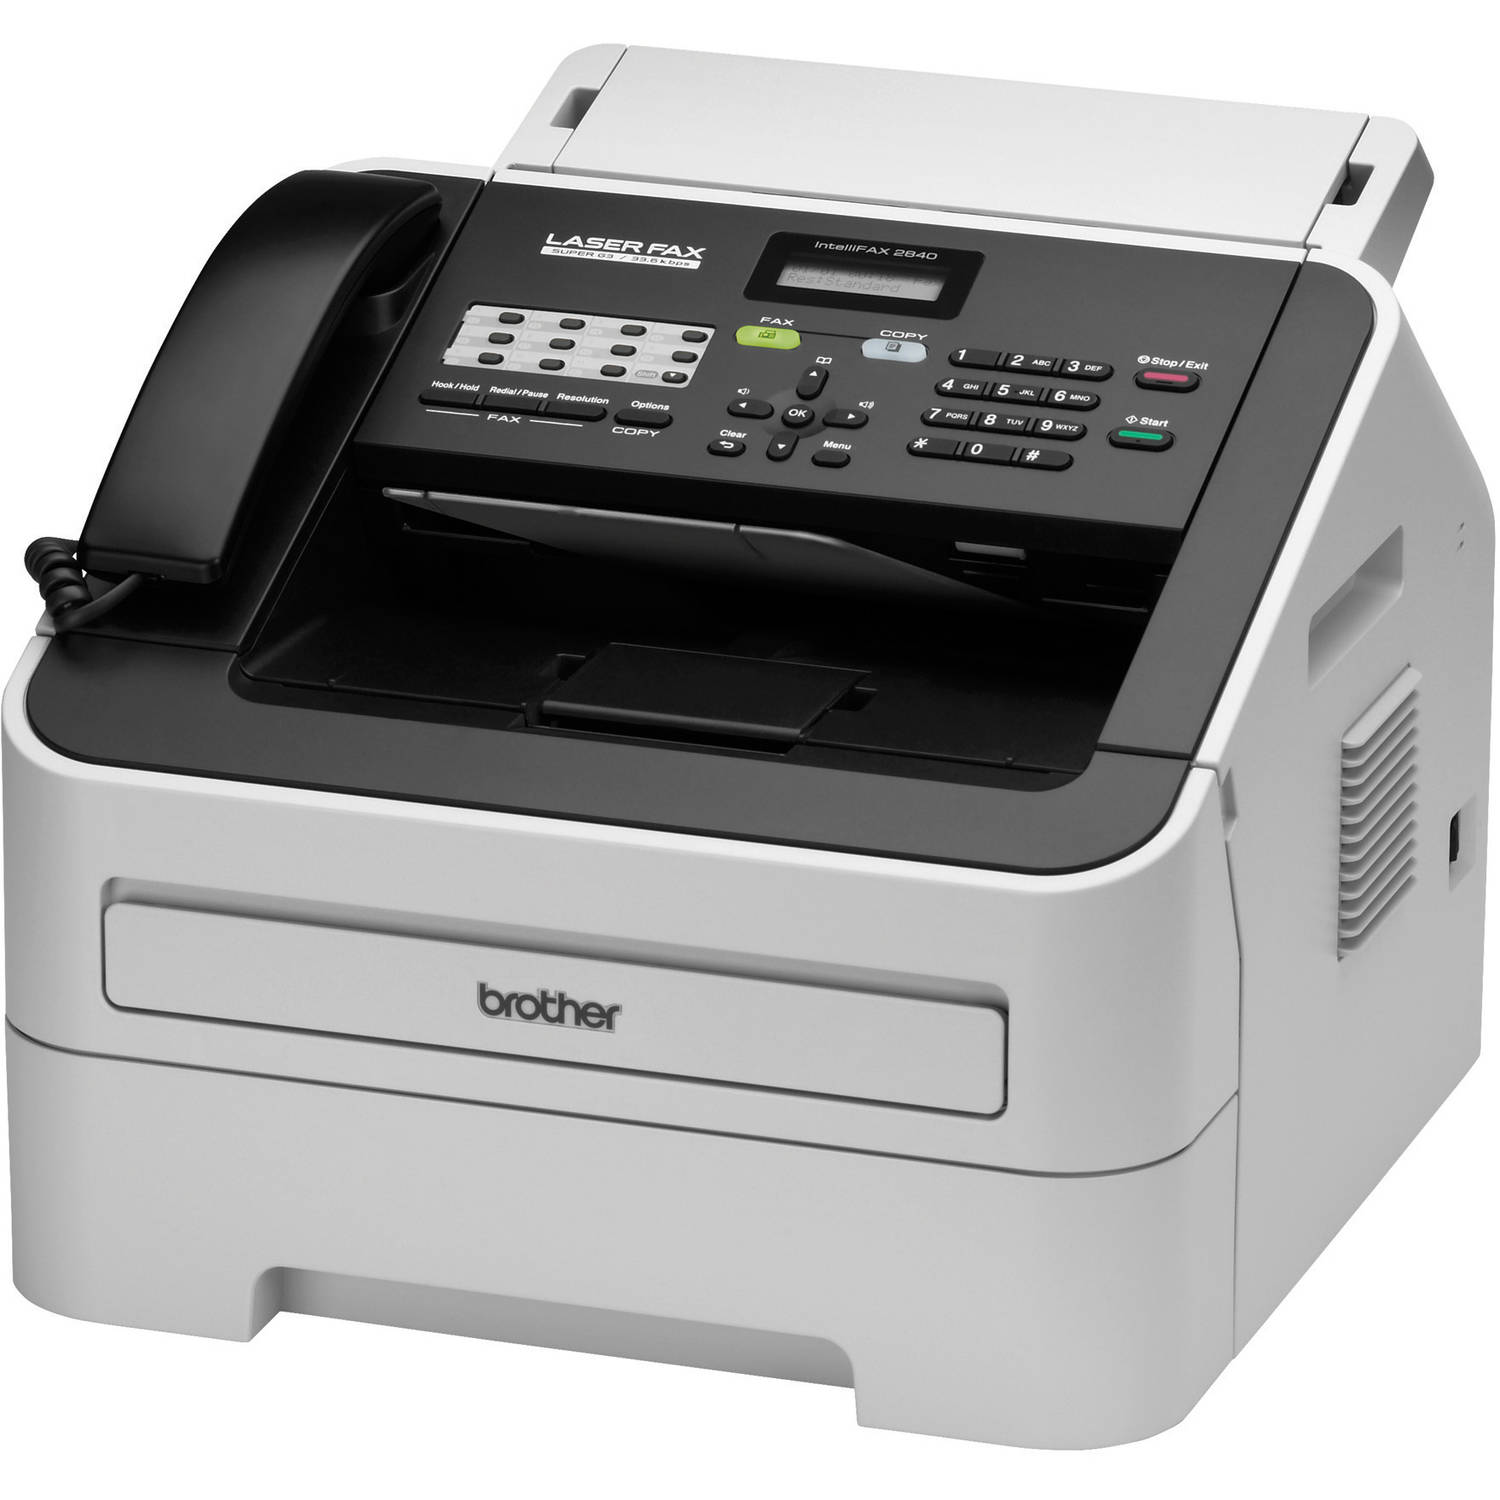 Refurbished Brother Fax2840 Laser Fax and Copier